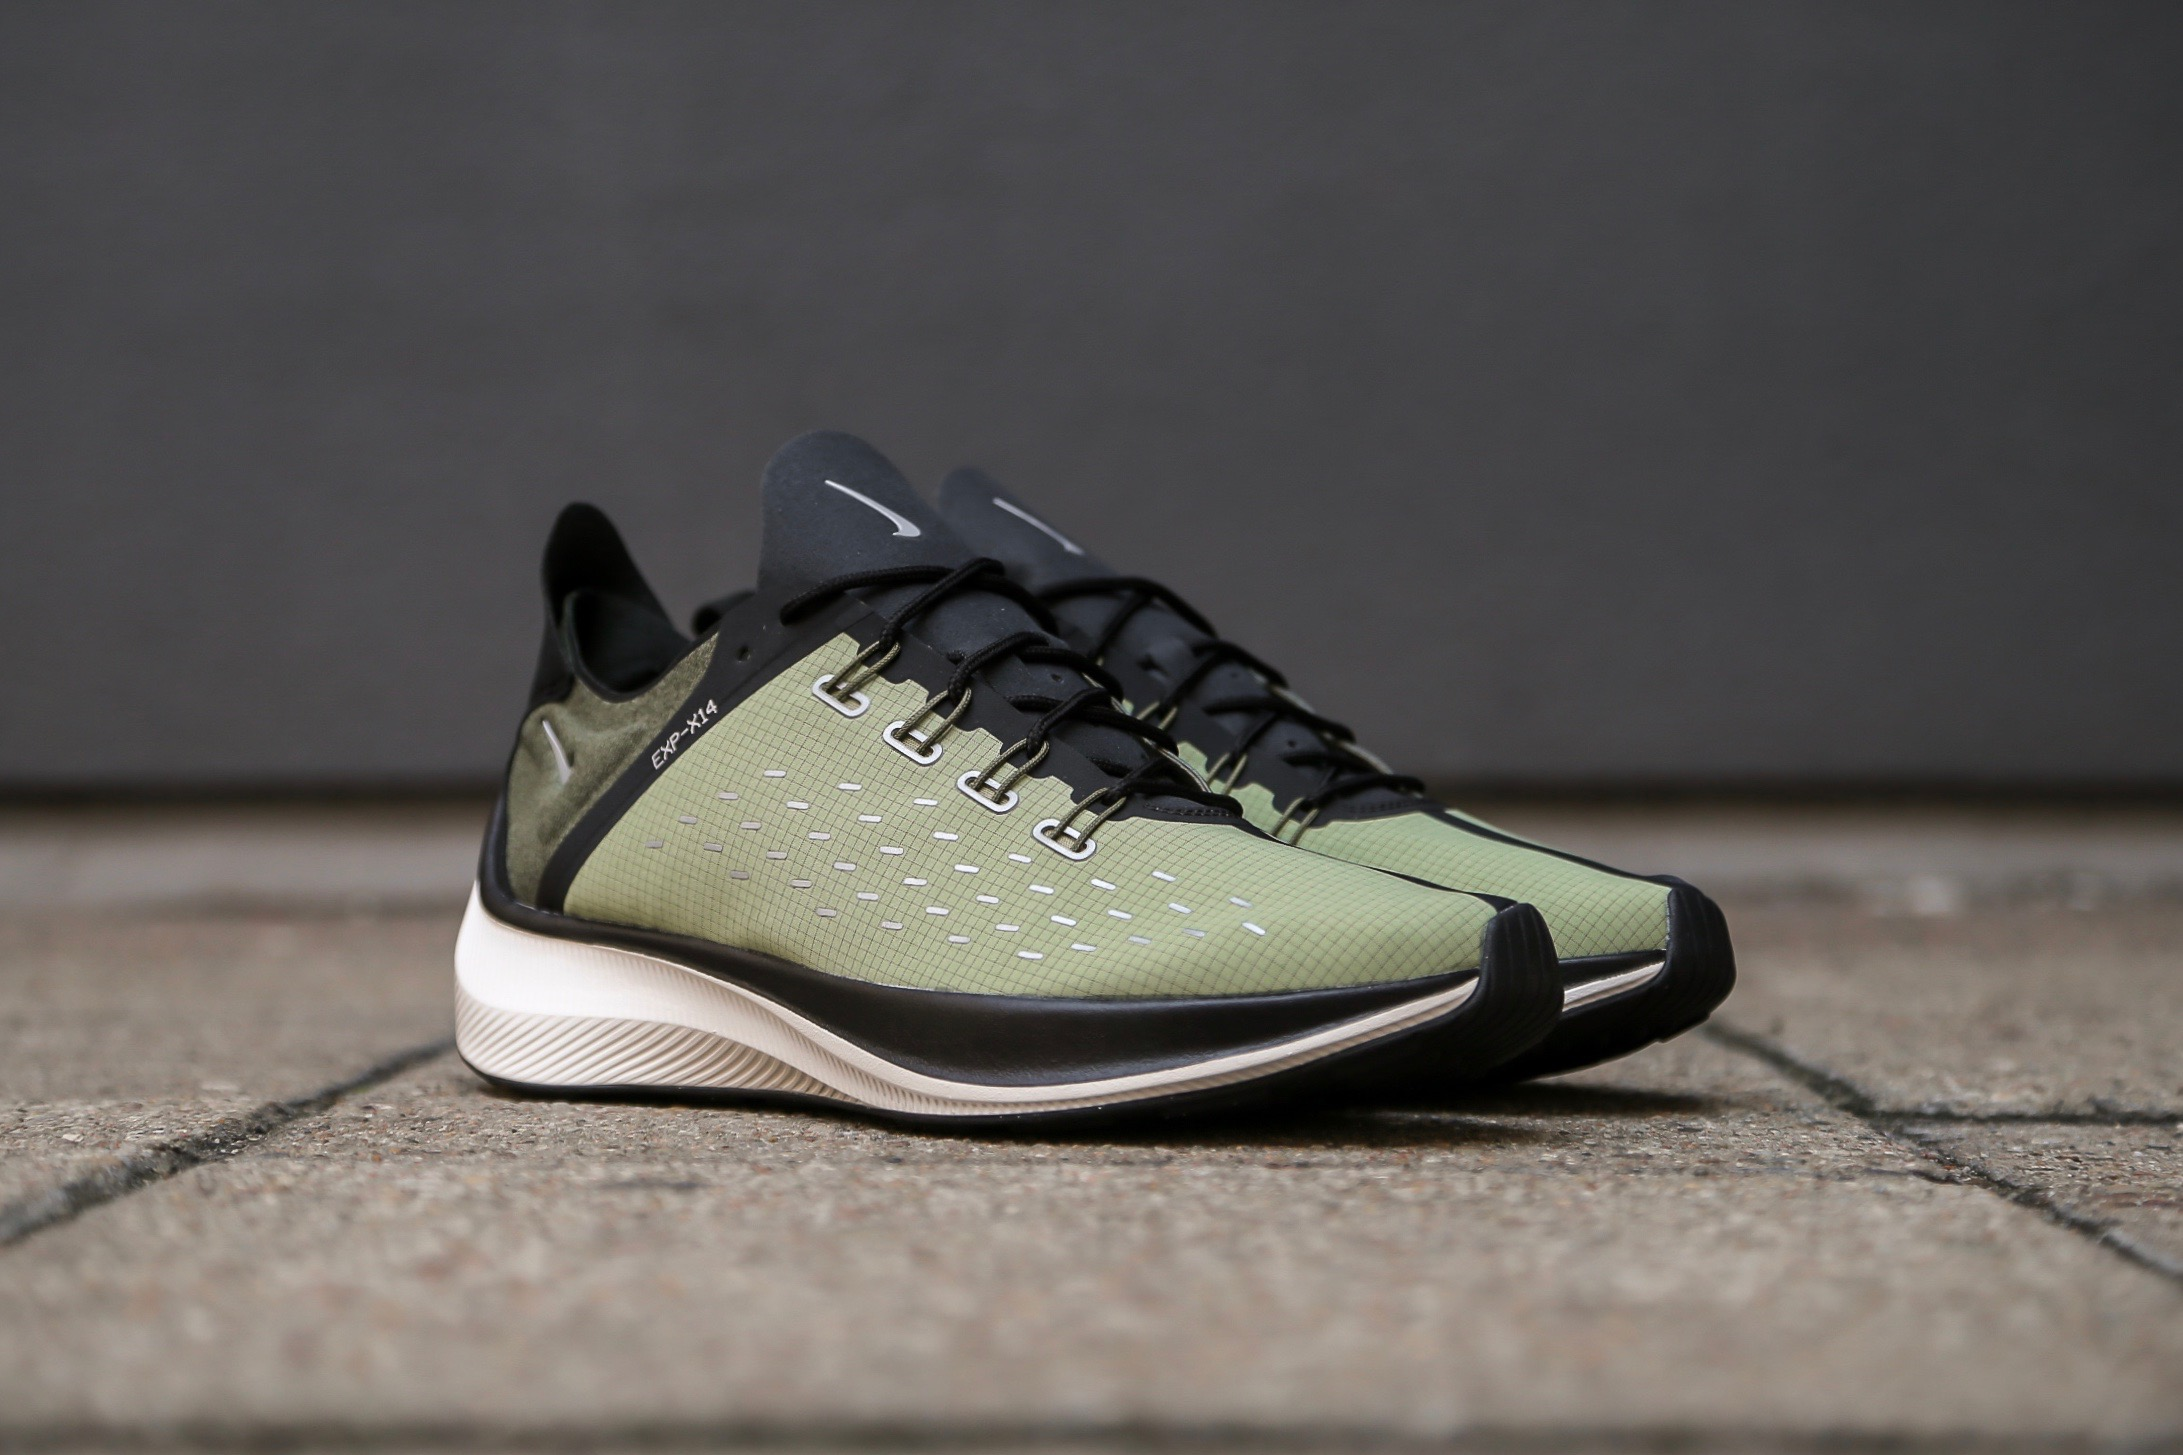 info for 87d7d 2c830 Nike EXP-X14 SE – Black   Medium Olive   Neutral Olive   Light Cream ...